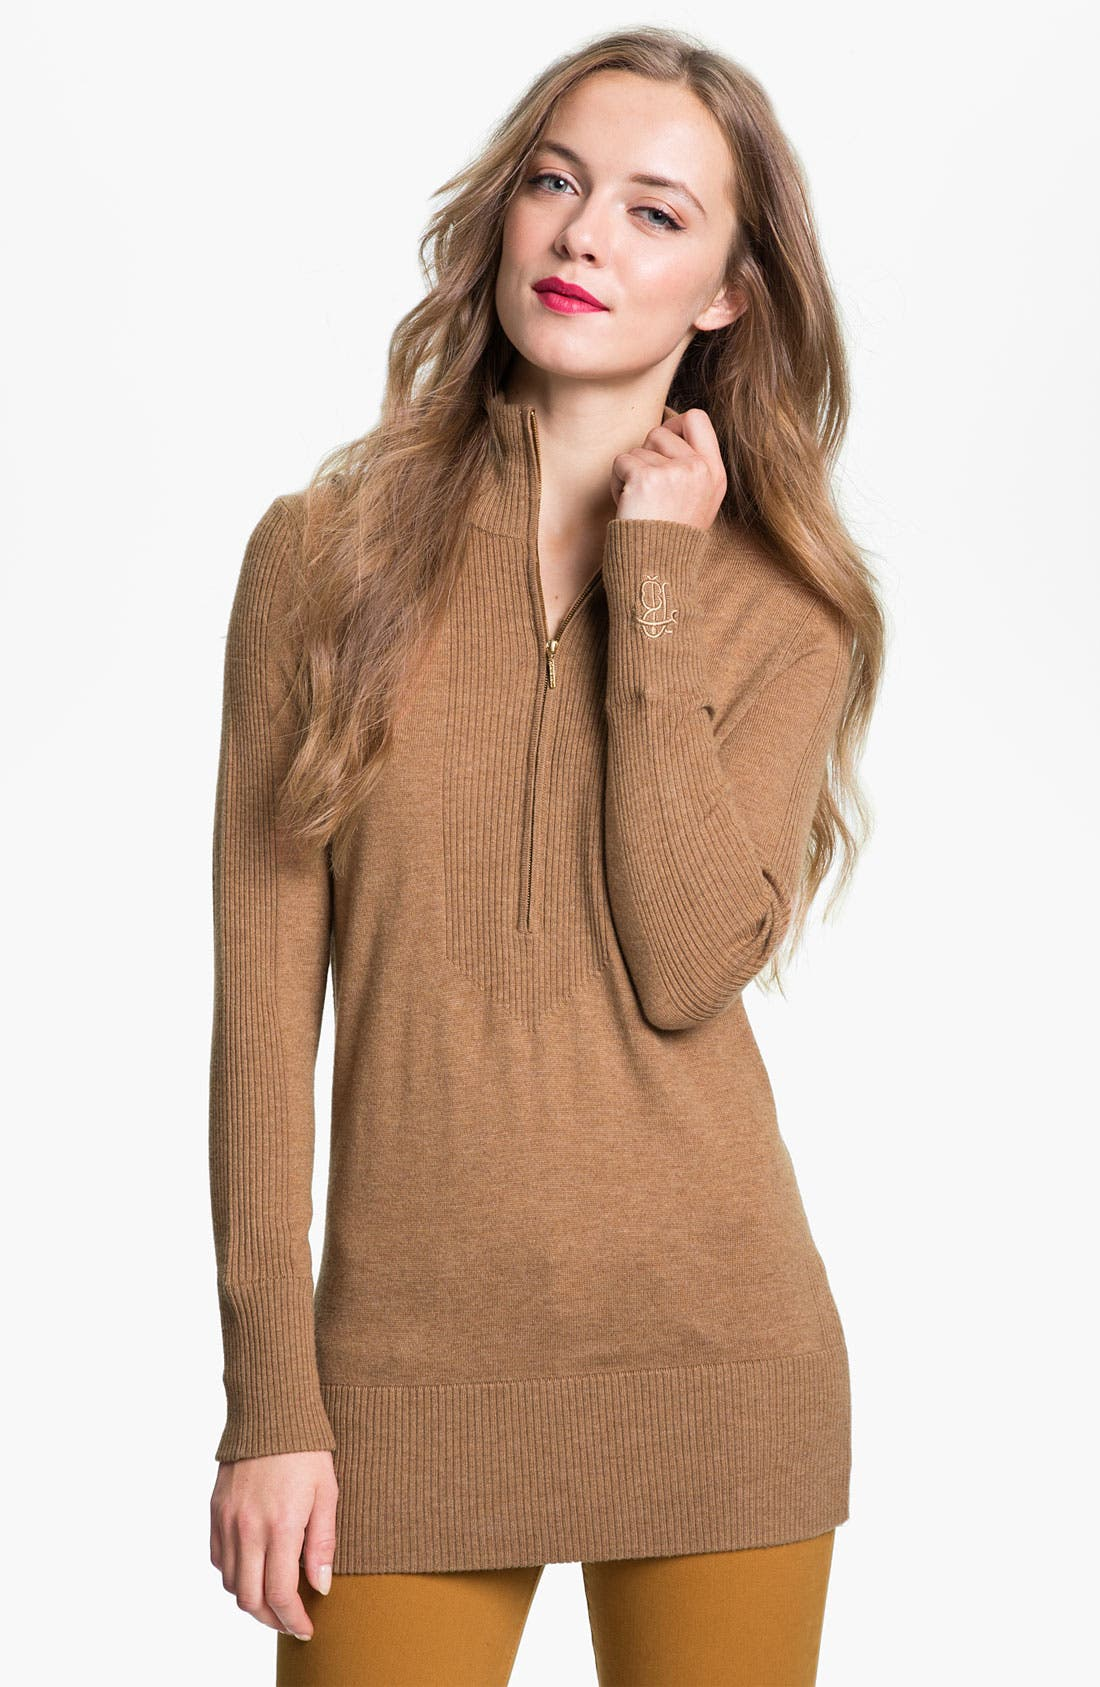 Alternate Image 1 Selected - Tory Burch 'Alora' Half Zip Sweater (Online Exclusive)